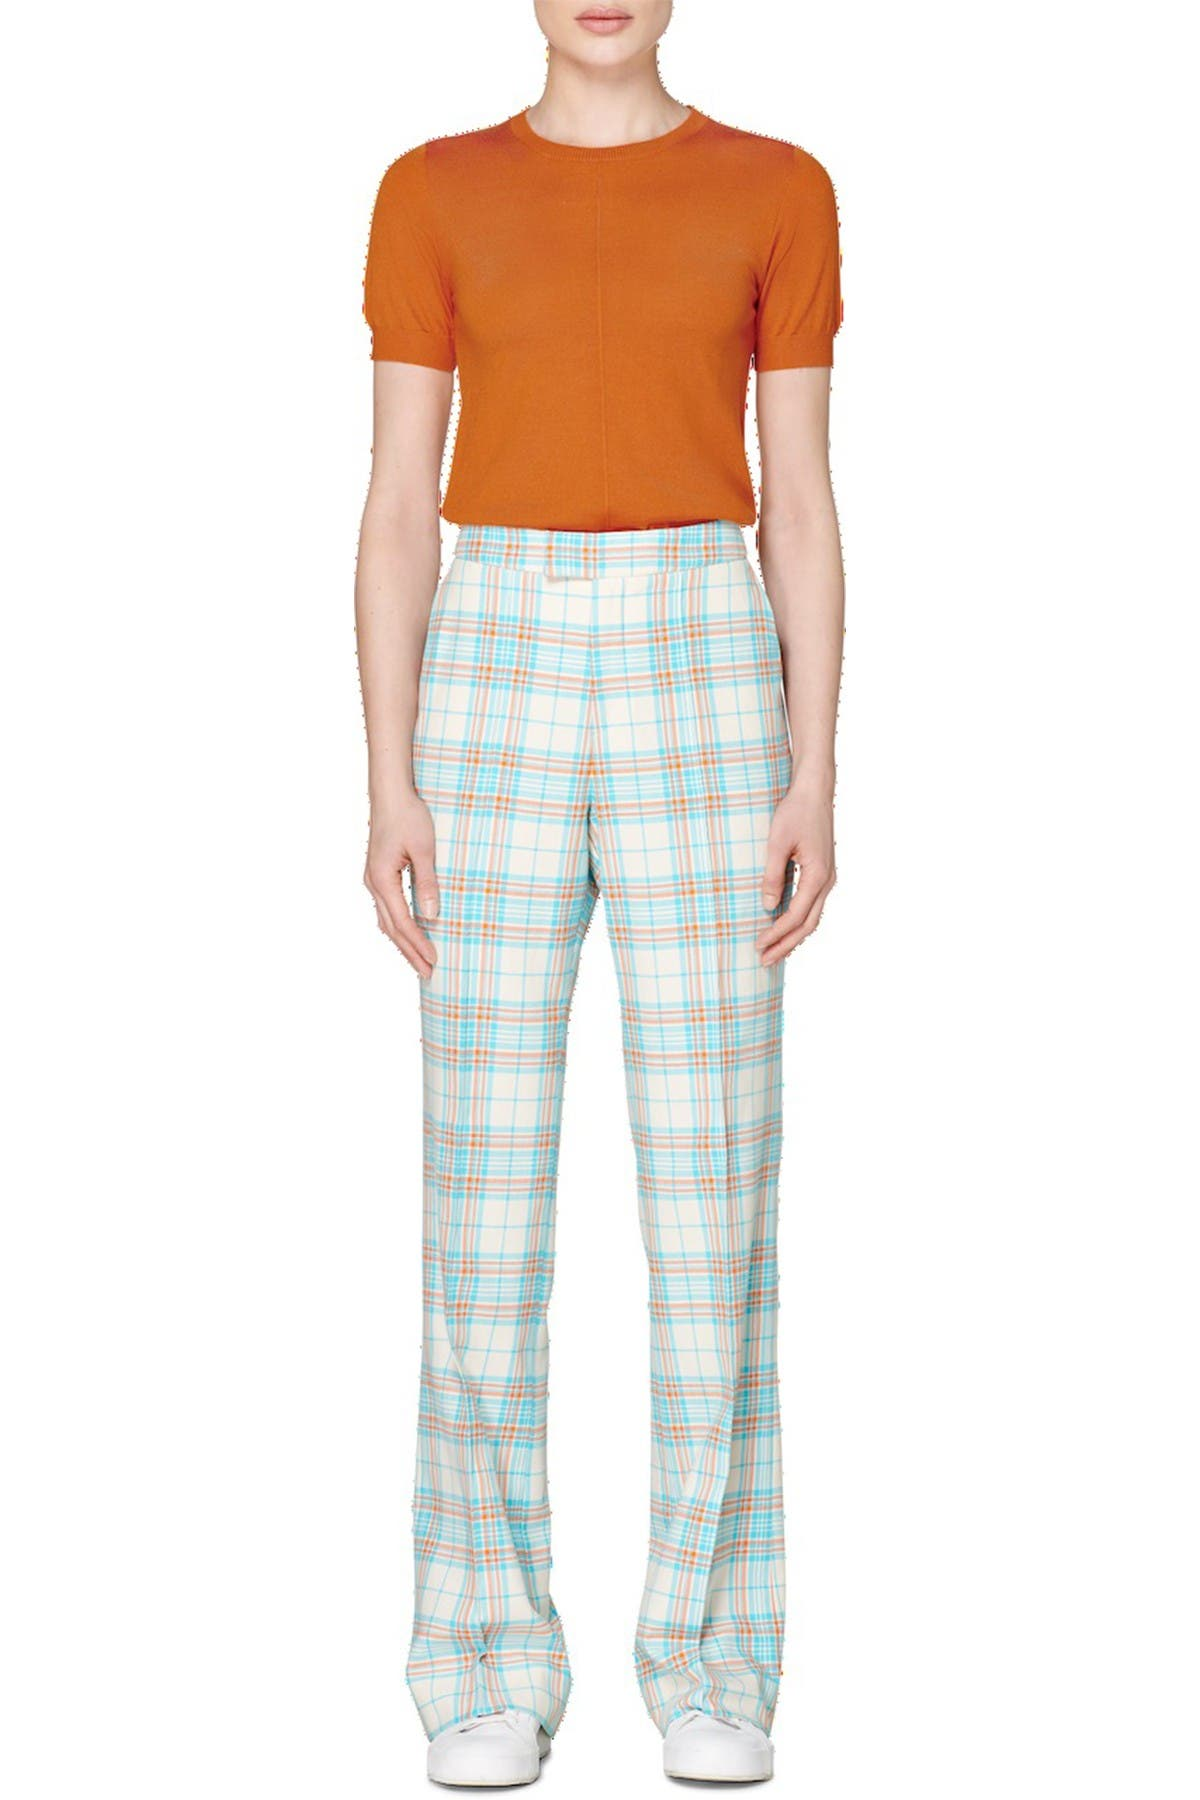 Image of SUISTUDIO Ally Check Print Trousers